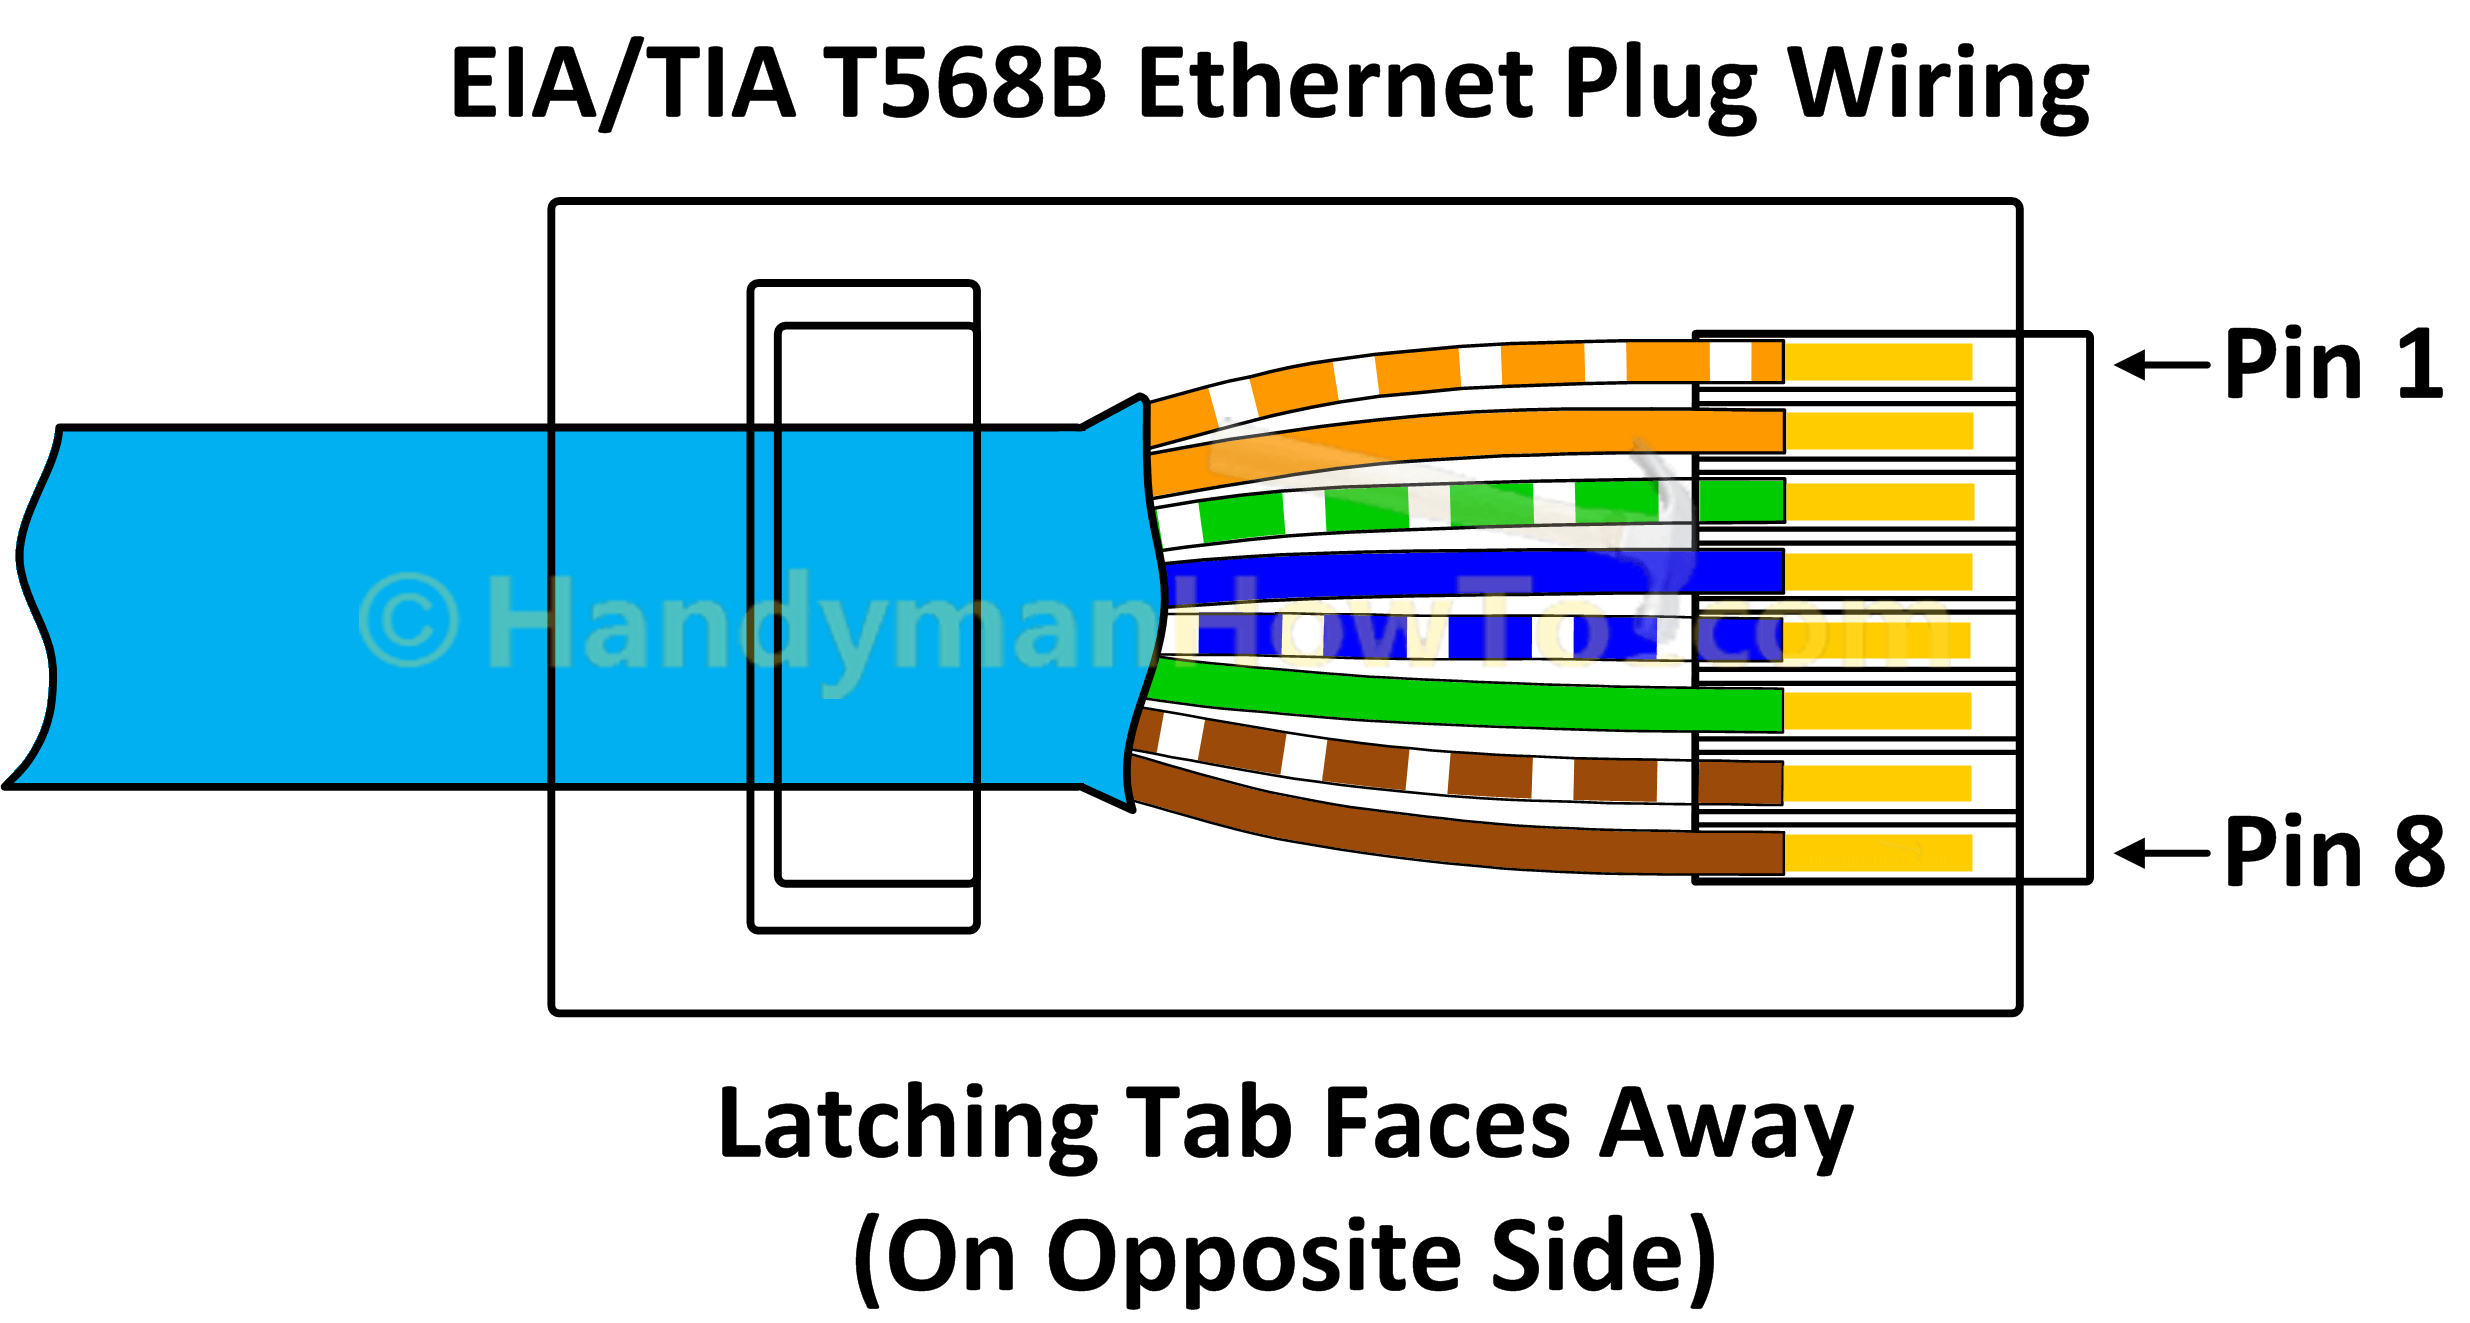 How To Wire A Cat6 Rj45 Ethernet Plug - Handymanhowto - Plug Wiring Diagram